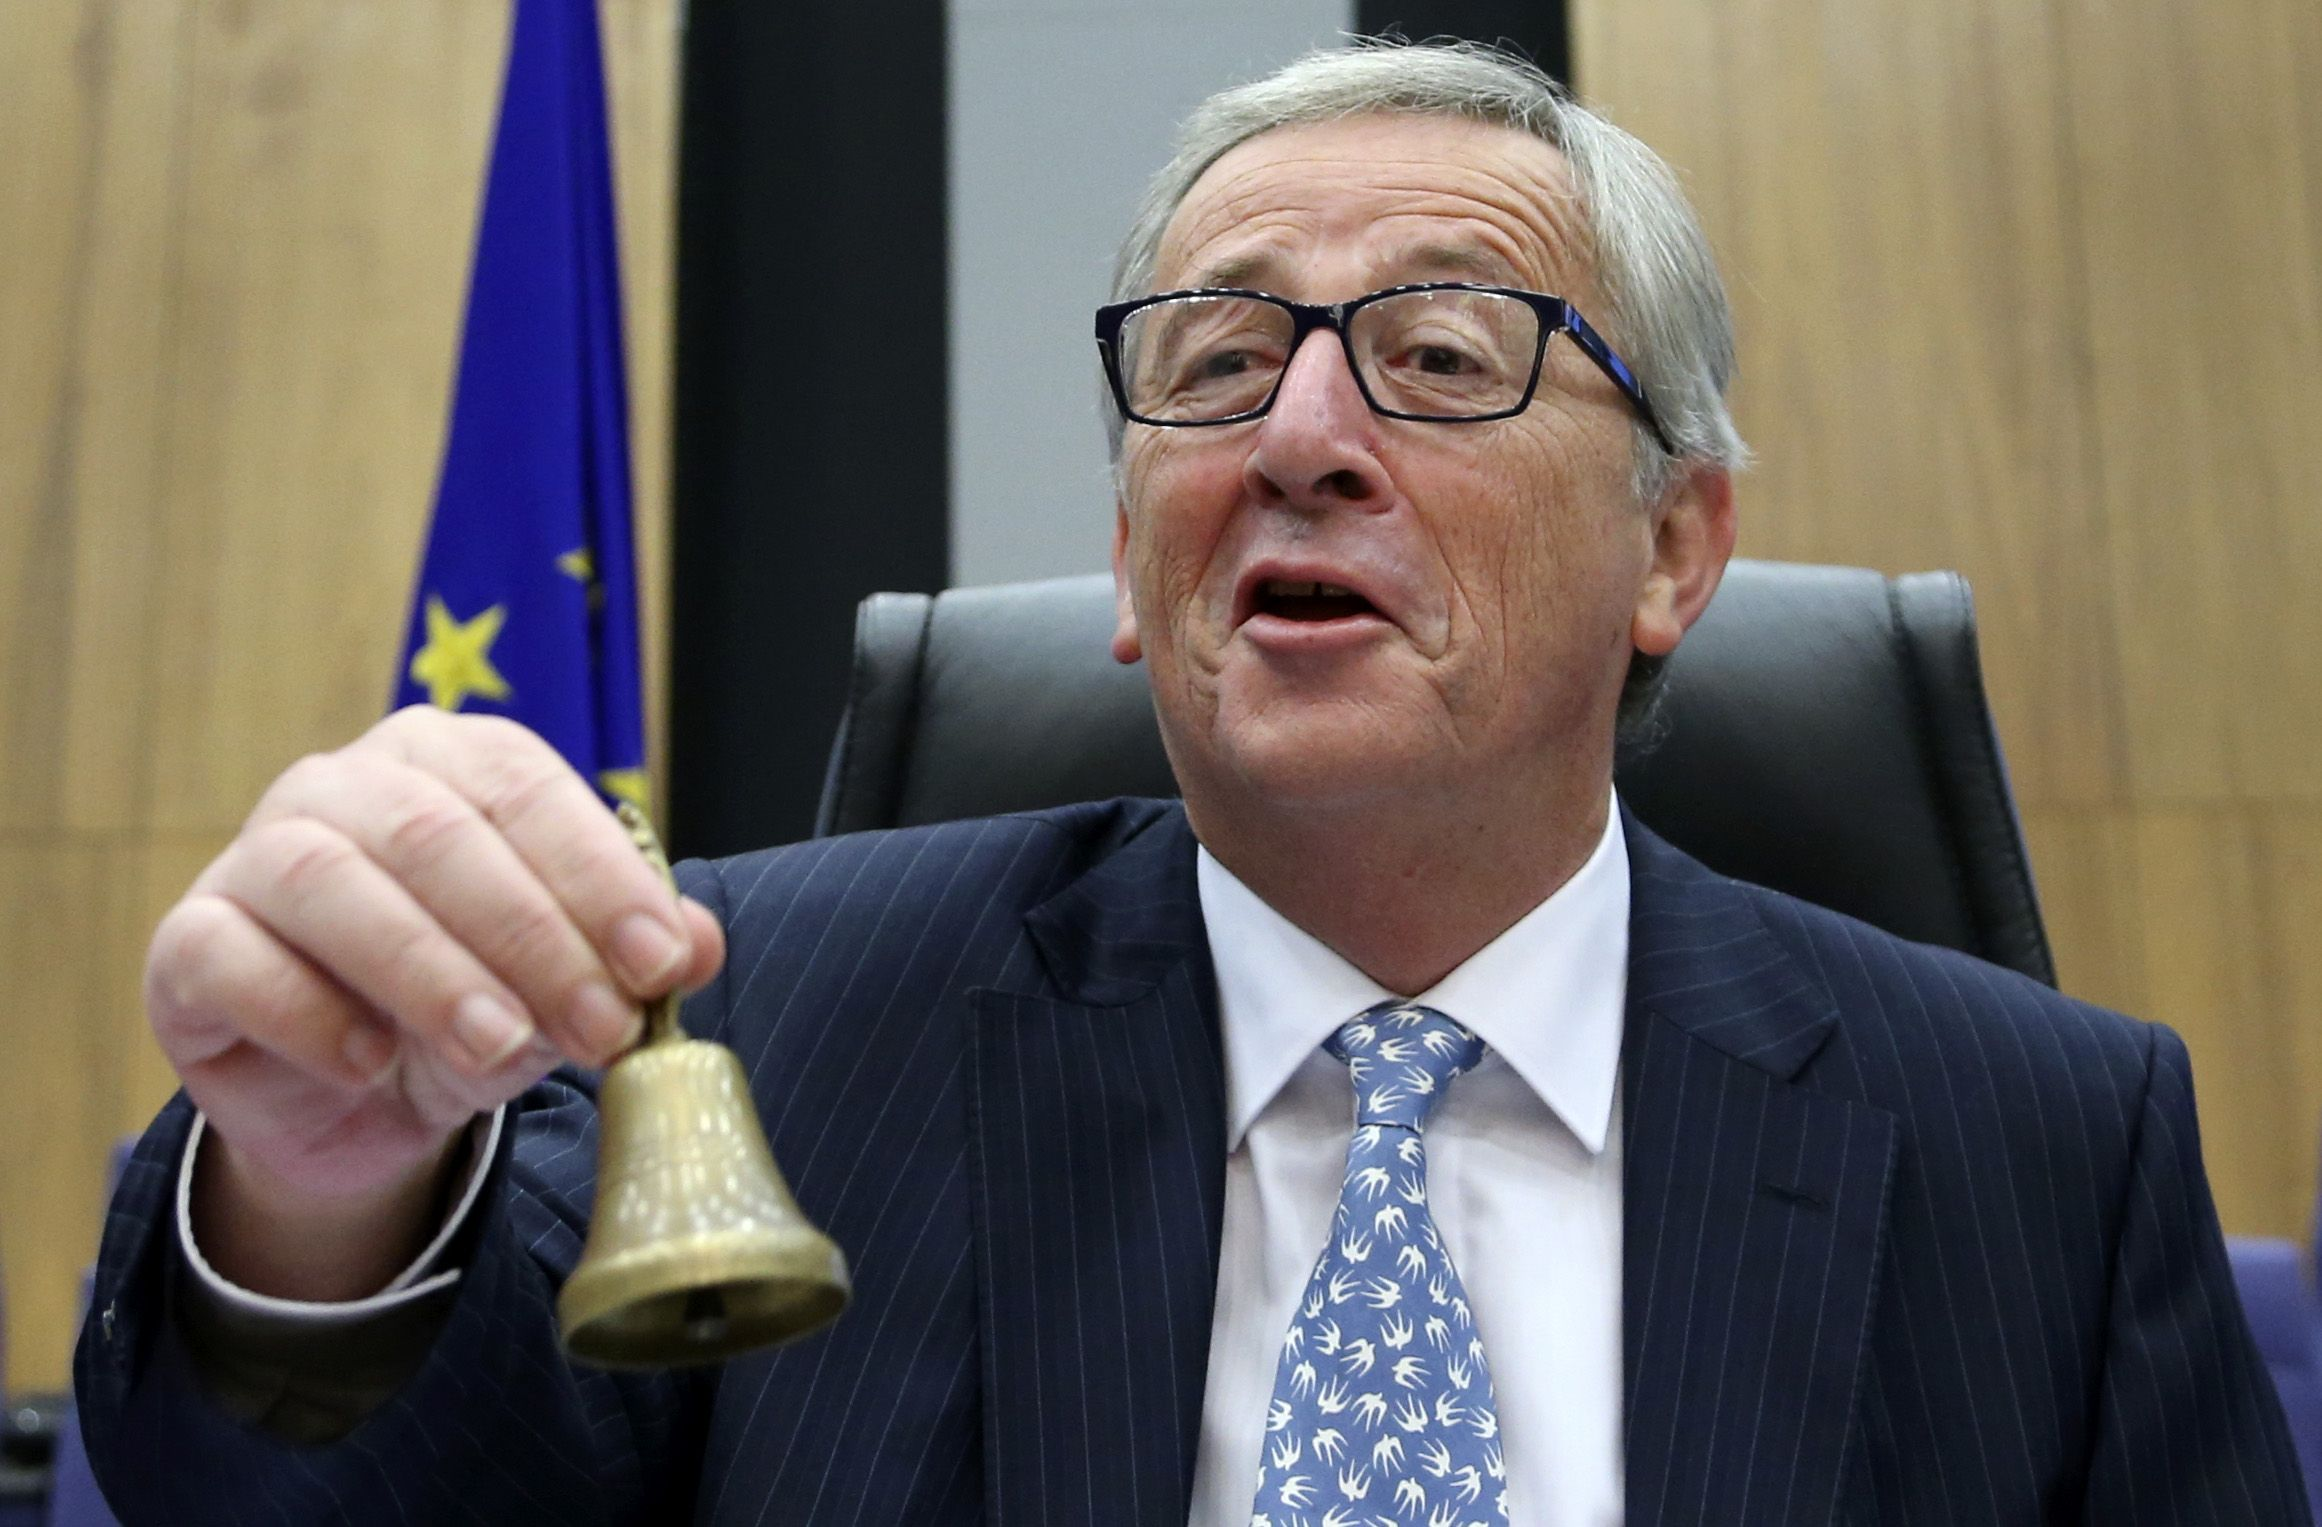 Juncker Unlikely to be Unseated Despite 'Tax Haven' Scandal